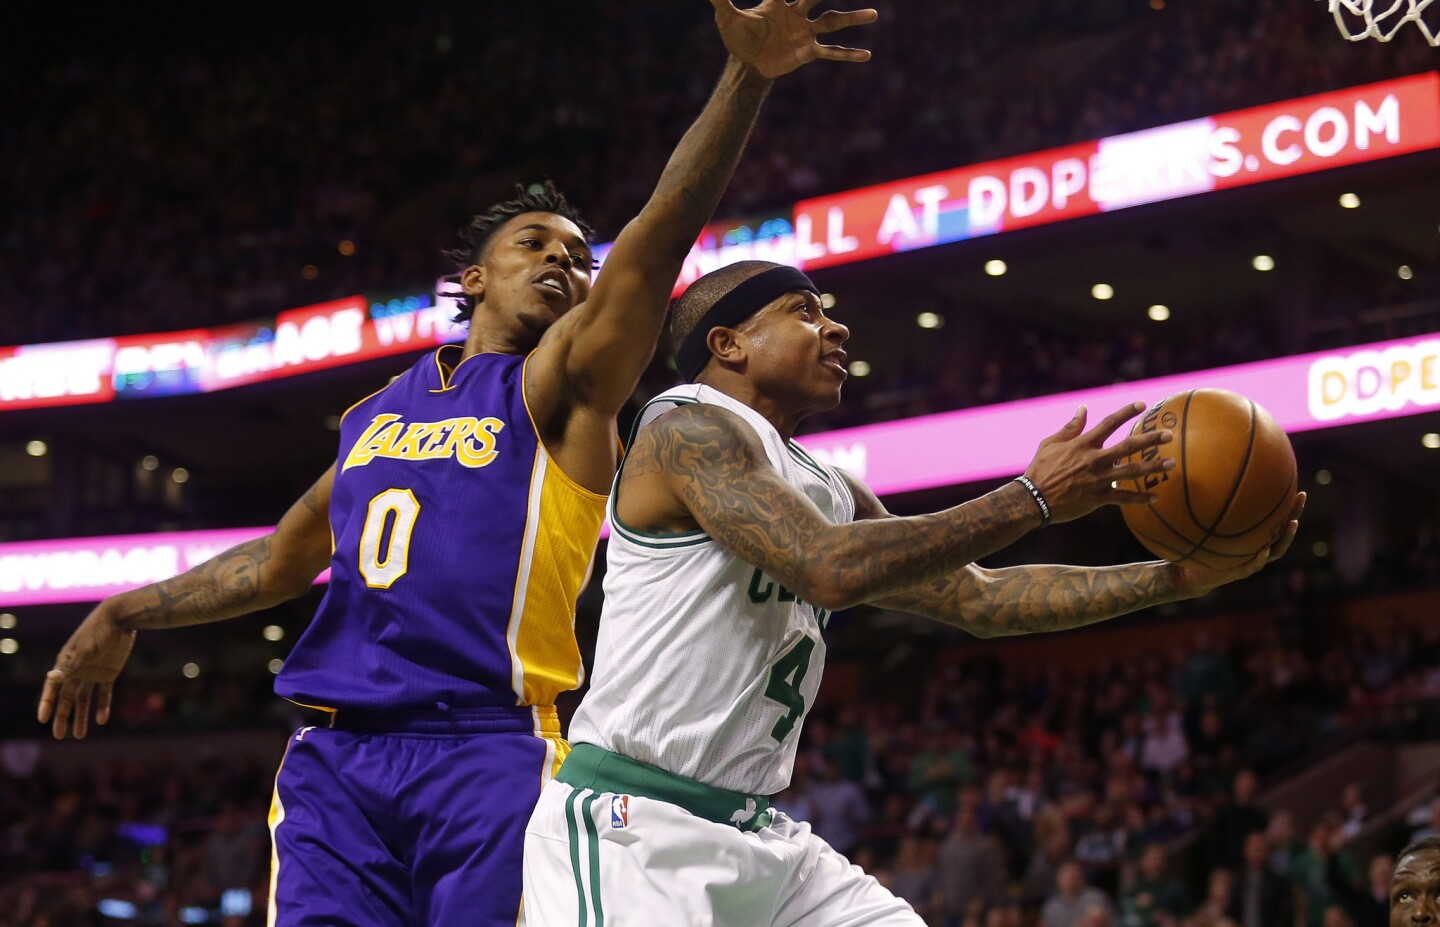 Celtics guard Isaiah Thomas drives past Lakers guard Nick Young for a layup during the first half.